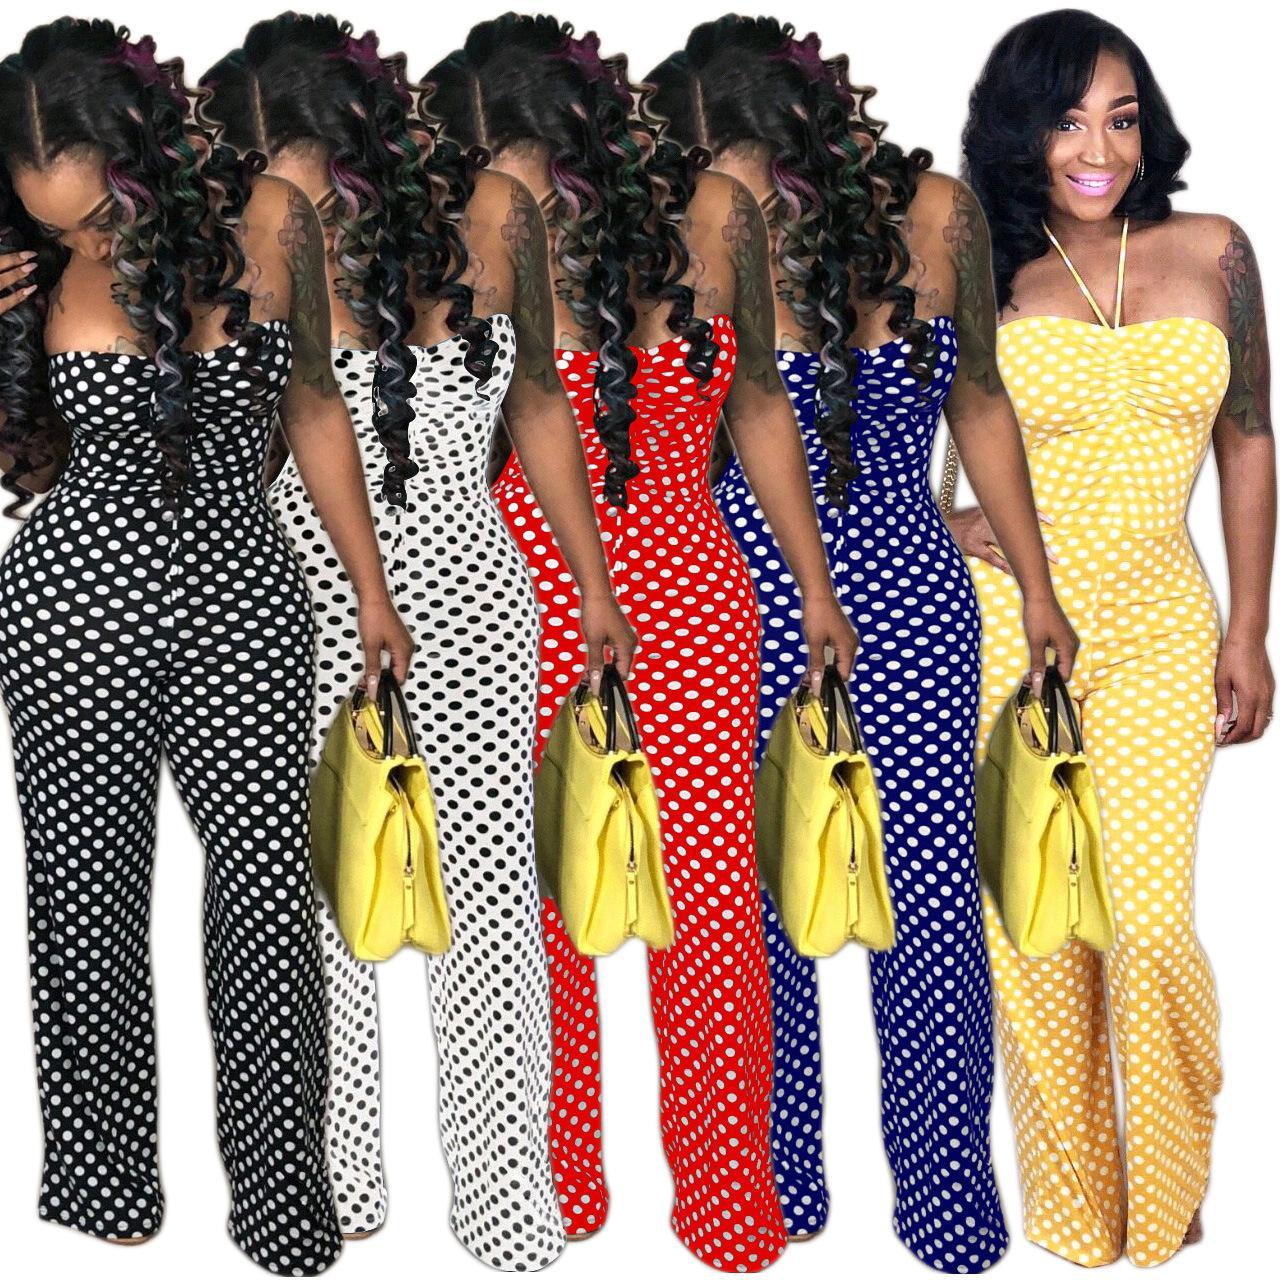 38e2d4bc55d9 2019 Women Polka Dot Strapless Jumpsuits Stretchy Chest Wrap Wide Leg  Casual Long Print Party Jumpsuit Romper Sexy Club Wear From Hengytrade